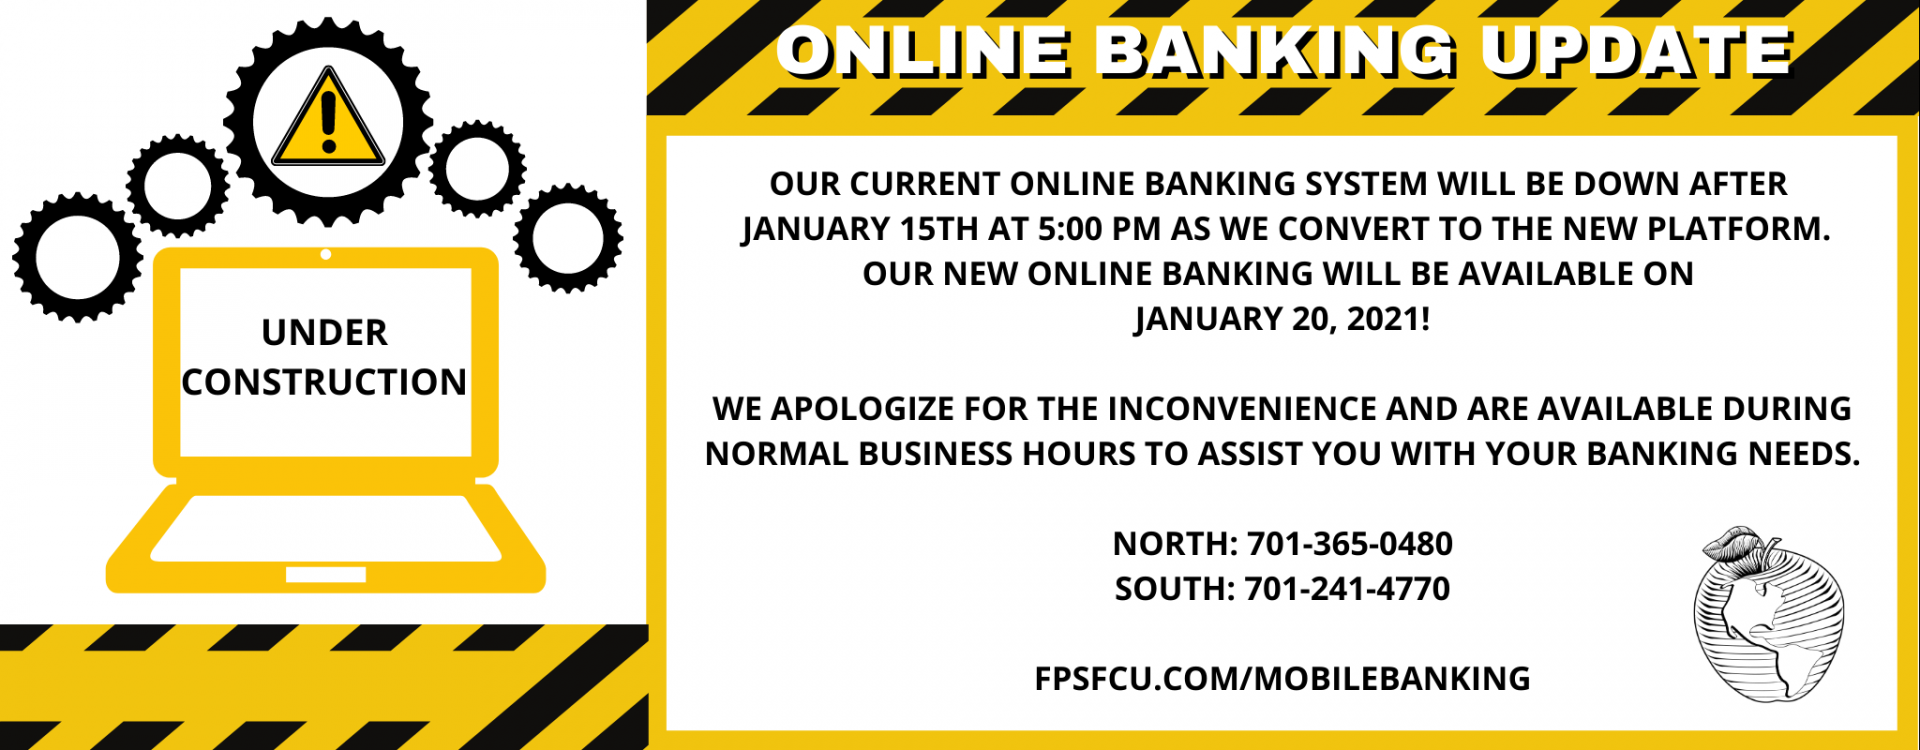 OUR CURRENT ONLINE BANKING SYSTEM WILL BE DOWN AFTER JANUARY 15TH AT 5:00 PM AS WE CONVERT TO THE NEW PLATFORM. OUR NEW ONLINE BANKING WILL BE AVAILABLE ON JANUARY 20,2021! WE APOLOGIZE FOR THE INCONVENIENCE AND ARE AVAILABLE DURING NORMAL BUSINESS HOURS TO ASSIST YOU WITH YOUR BANKING NEEDS.